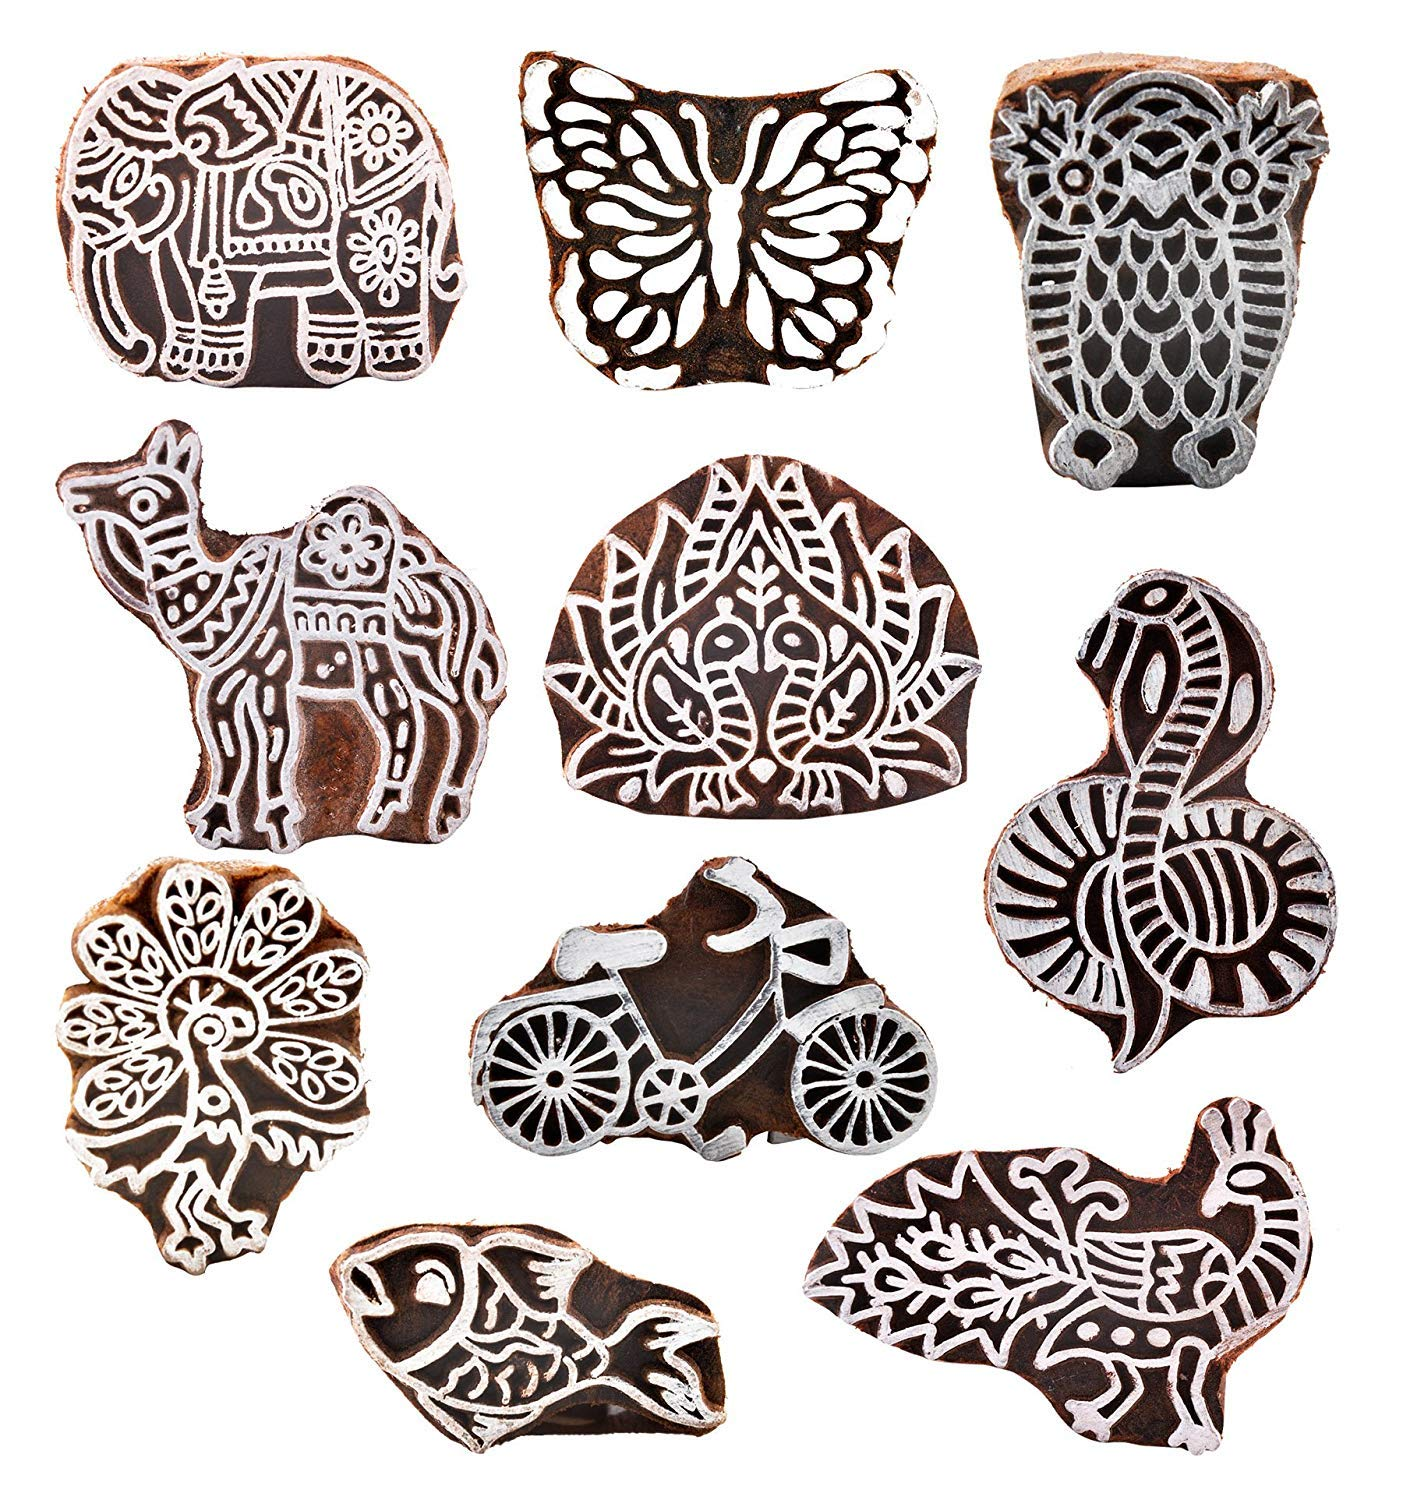 PARIJAT HANDICRAFT (Set of 10) Wooden Printing Stamp Block Hand-Carved for Saree Border Making Pottery Crafts Textile Printing